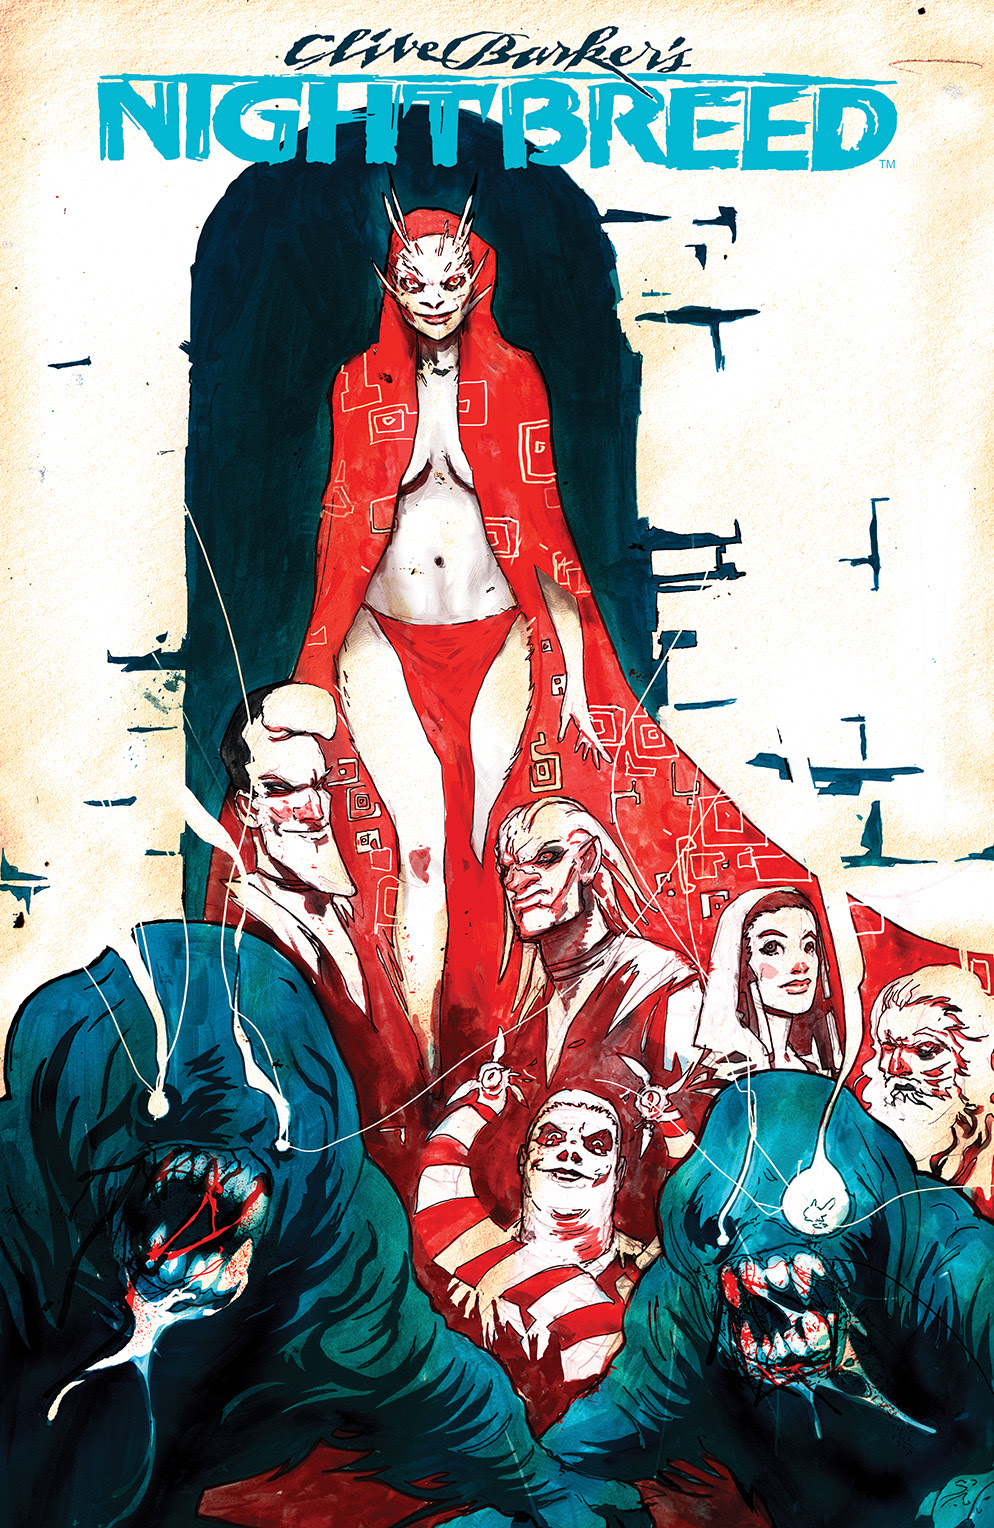 CLIVE BARKER'S NIGHTBREED #4 Cover A by Riley Rossmo